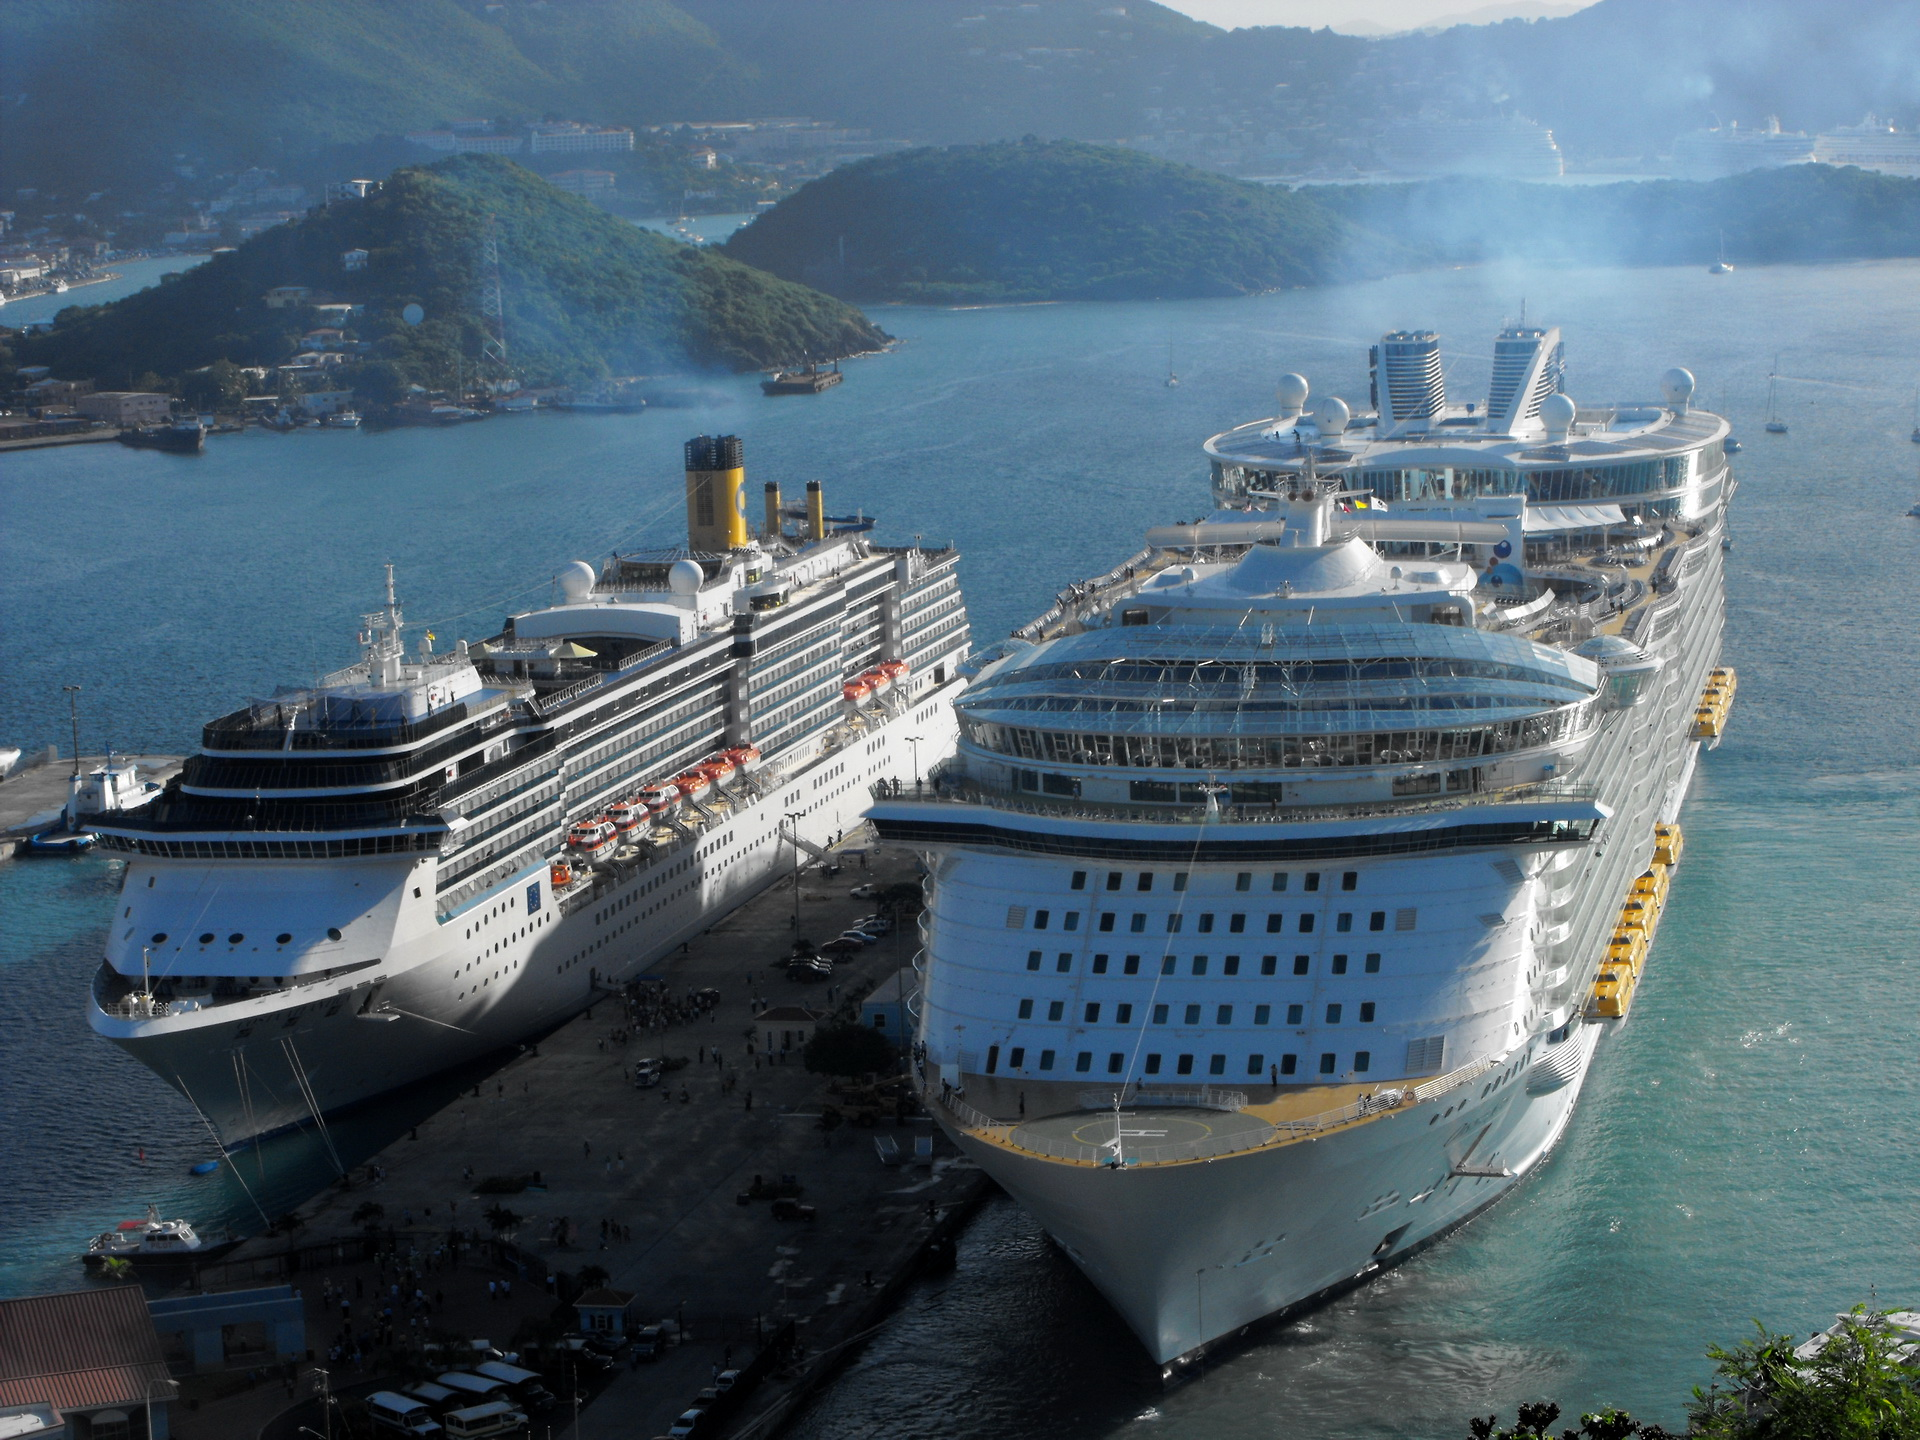 Pictures Cruise Liner Osais Of The Seas Ships